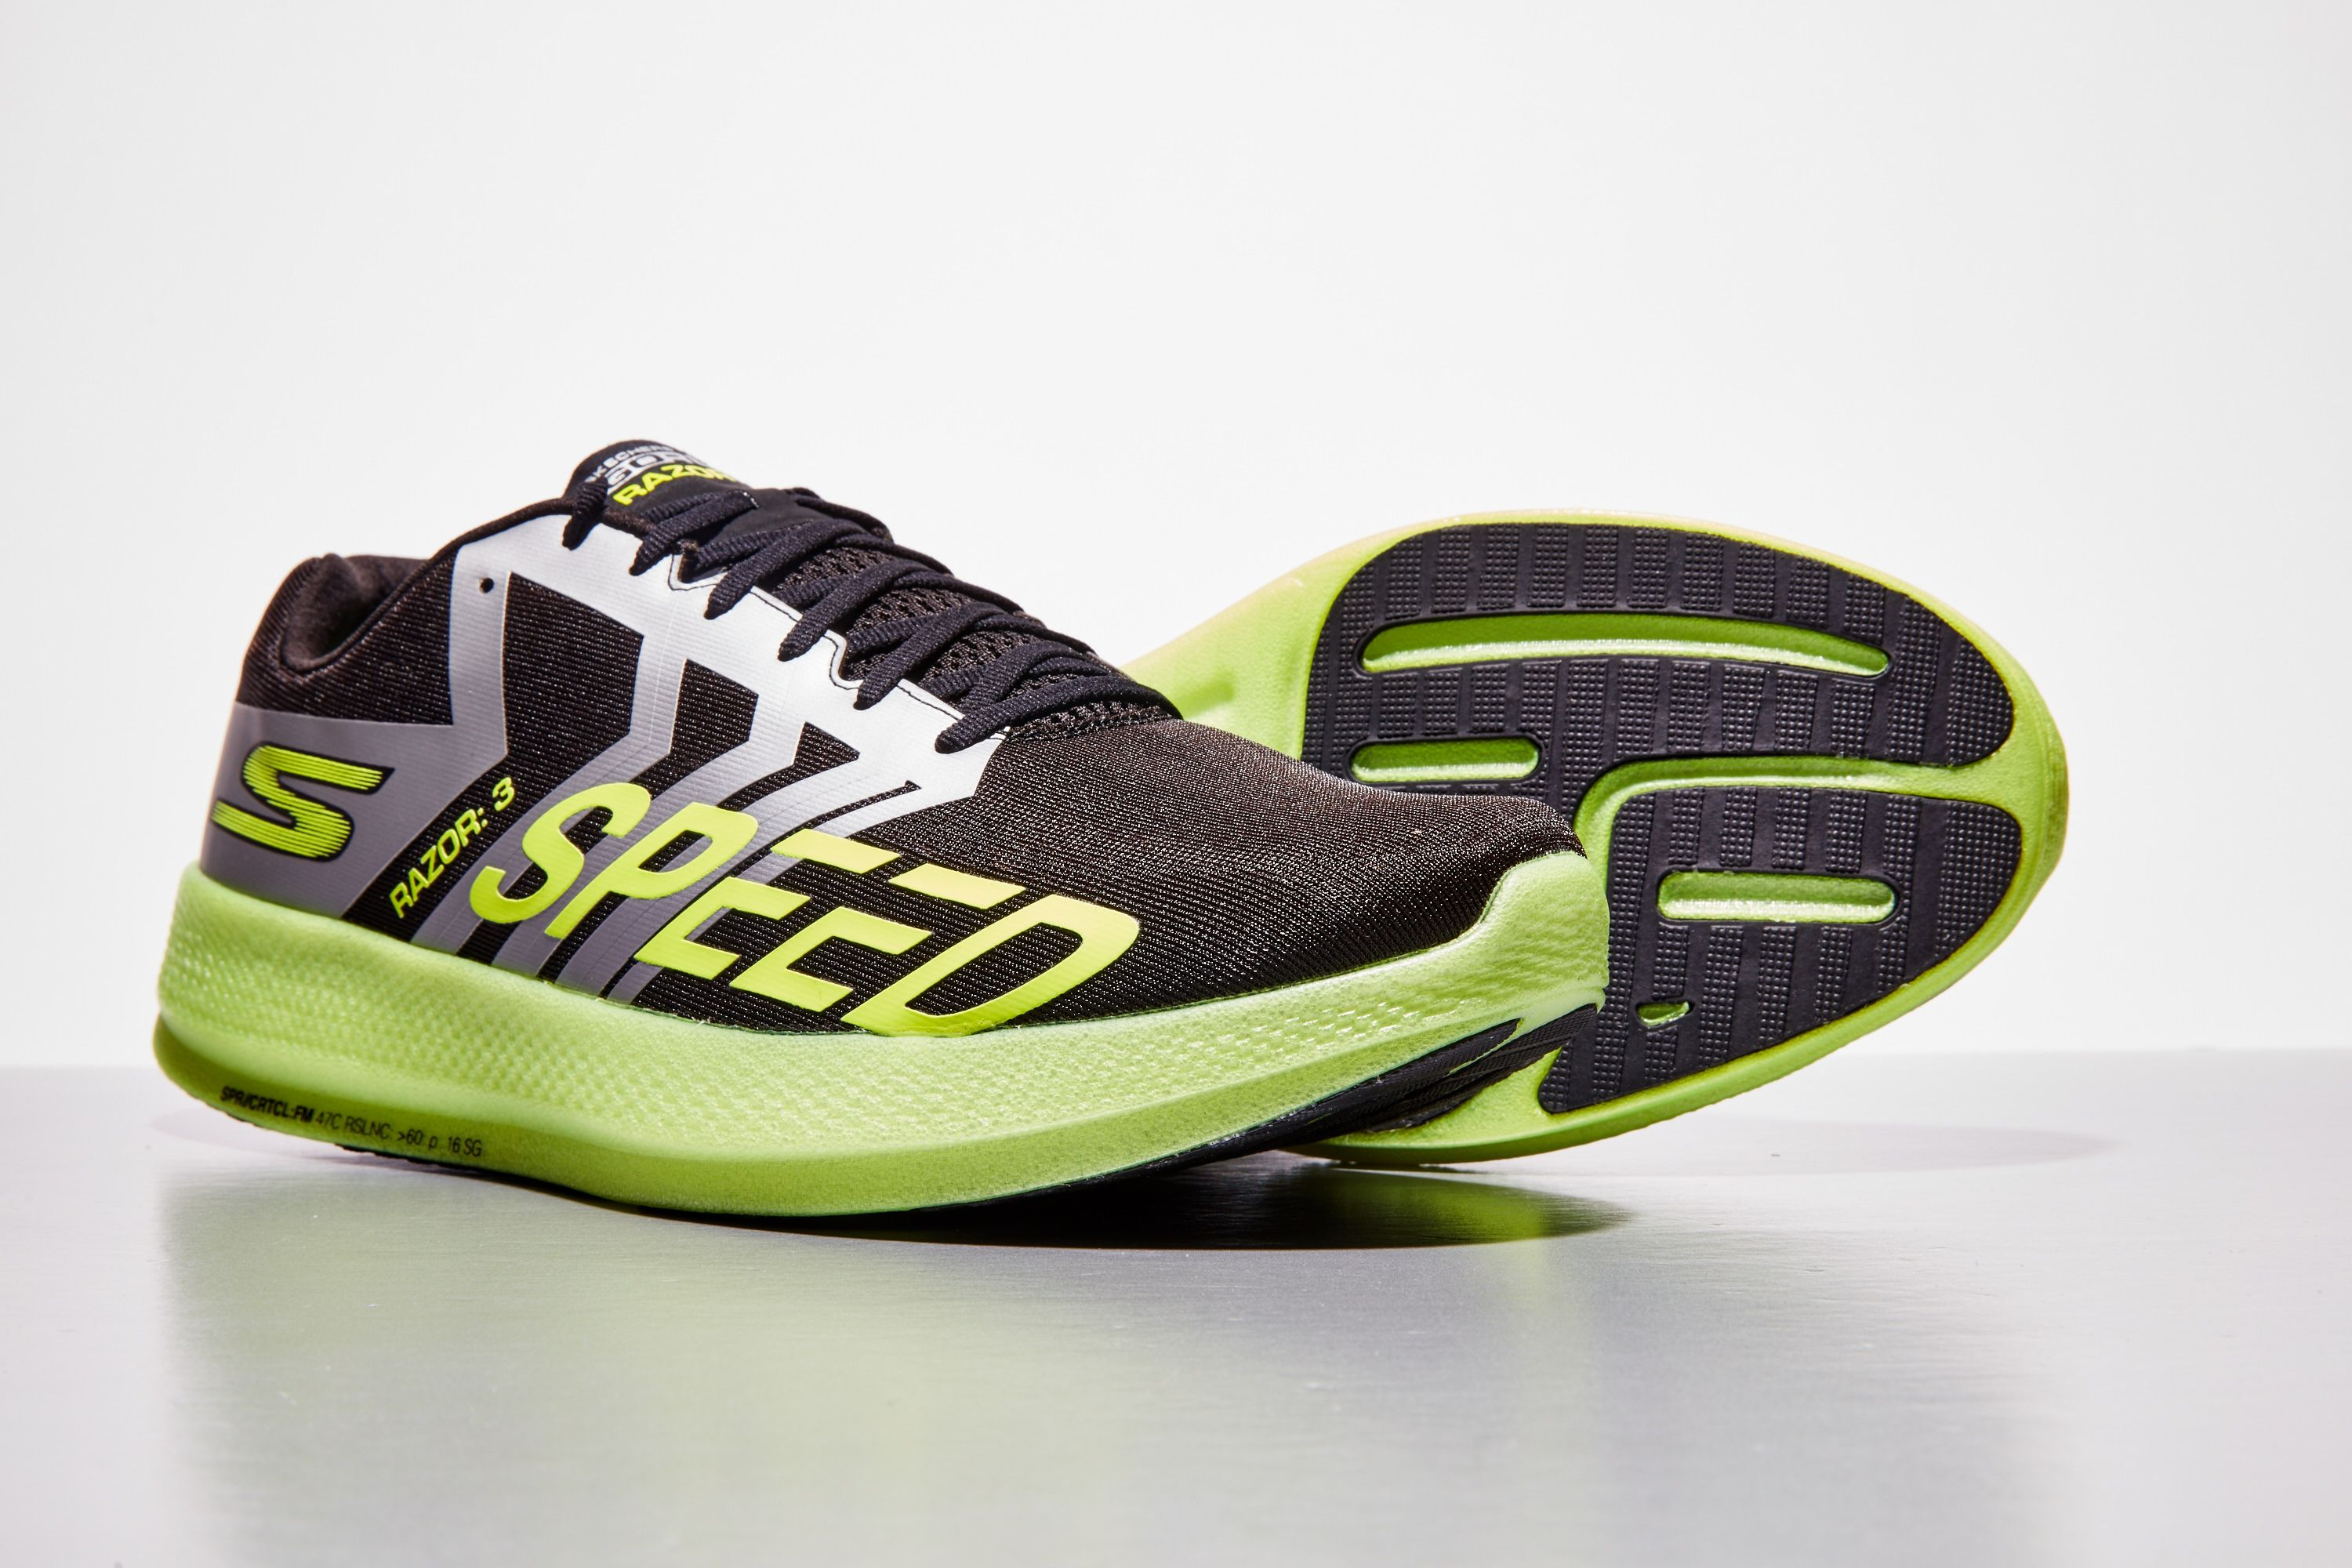 89e755b24f2ee The 9 Best Skechers Running Shoes You Can Buy